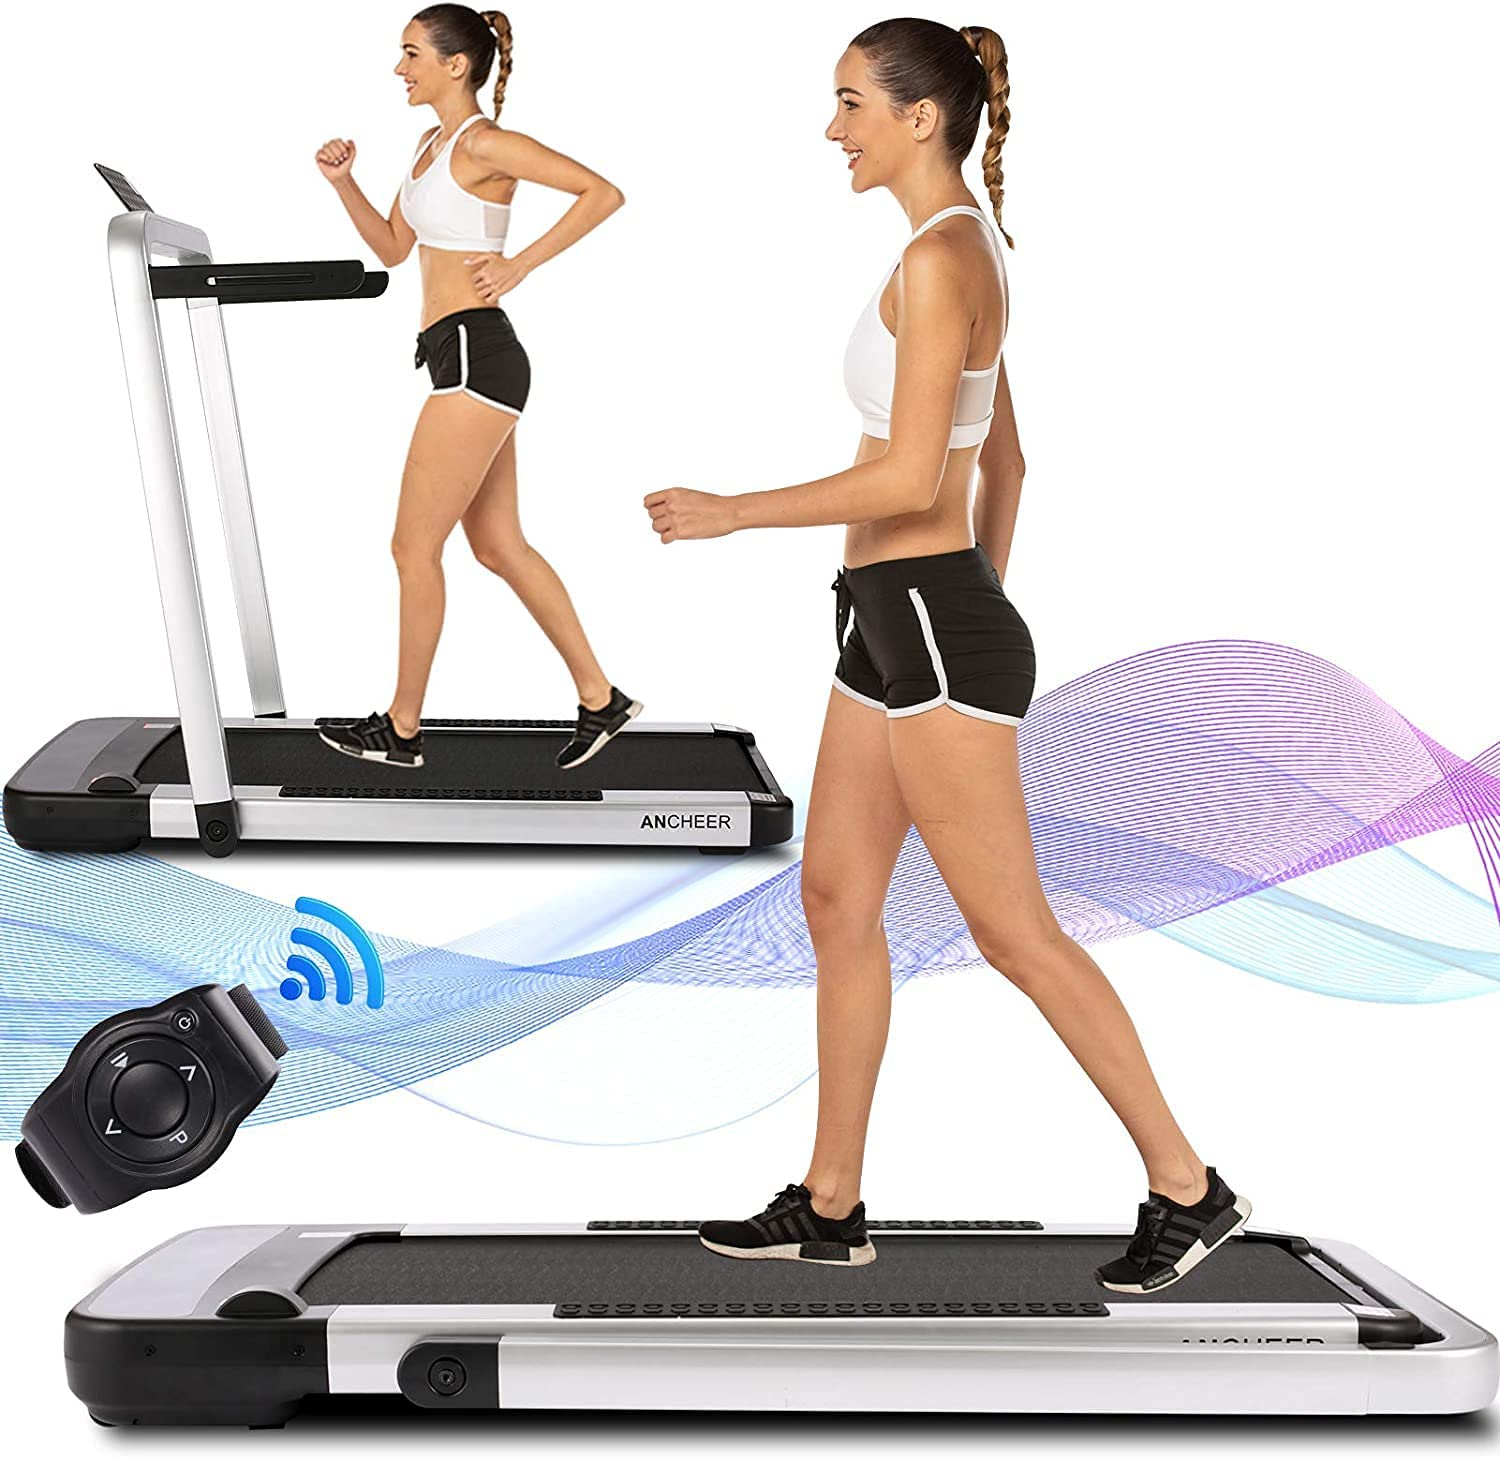 ANCHEER 2 in 1 Folding Boston Mall Treadmill Quality inspection Desk 2.25HP Electric Under Tre